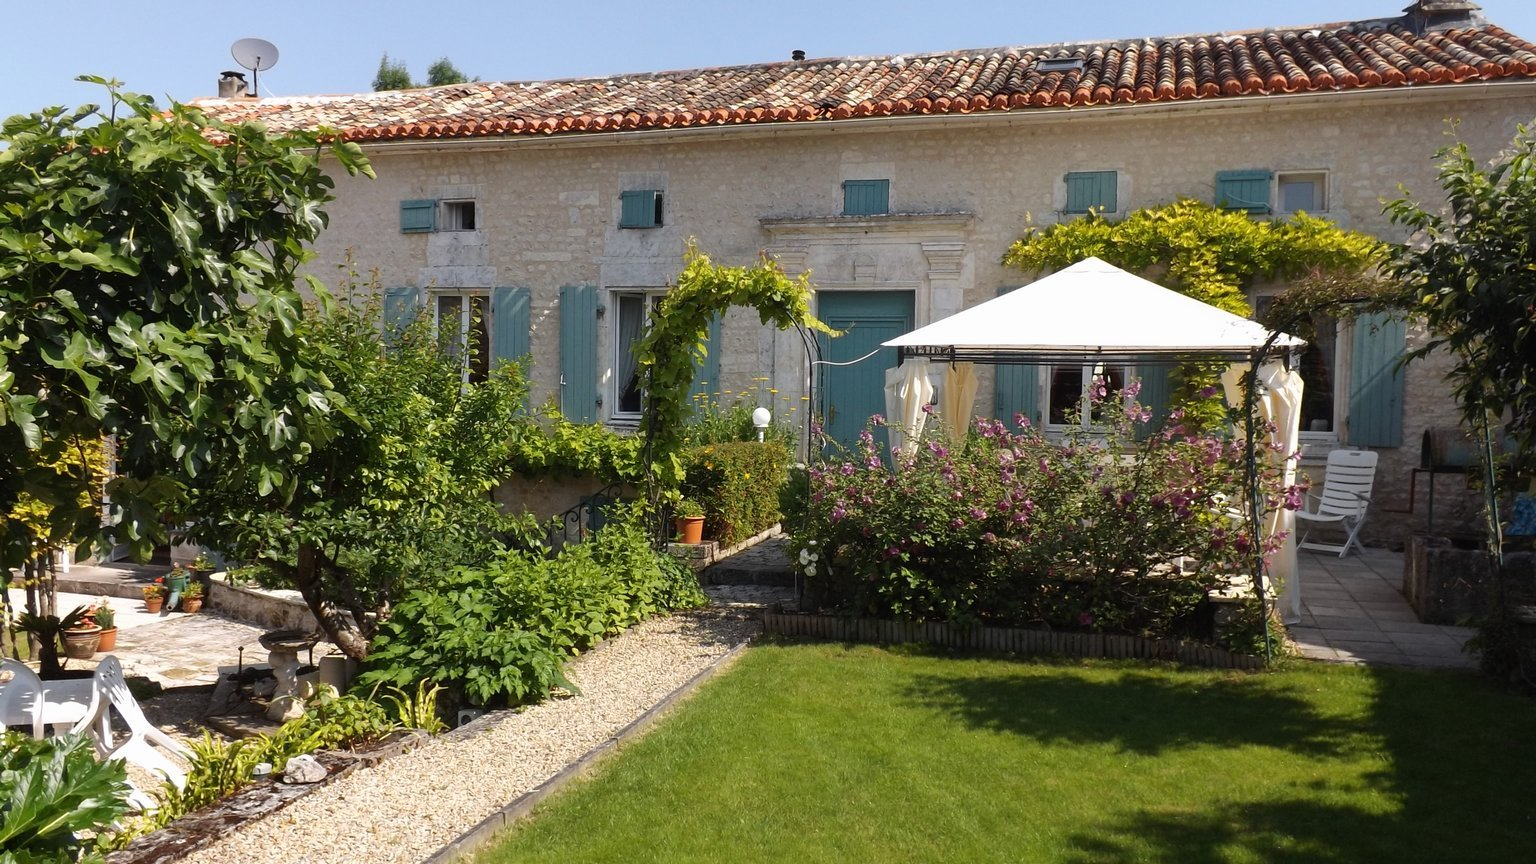 A fabulous up-and-running gite complex returning an excellent income